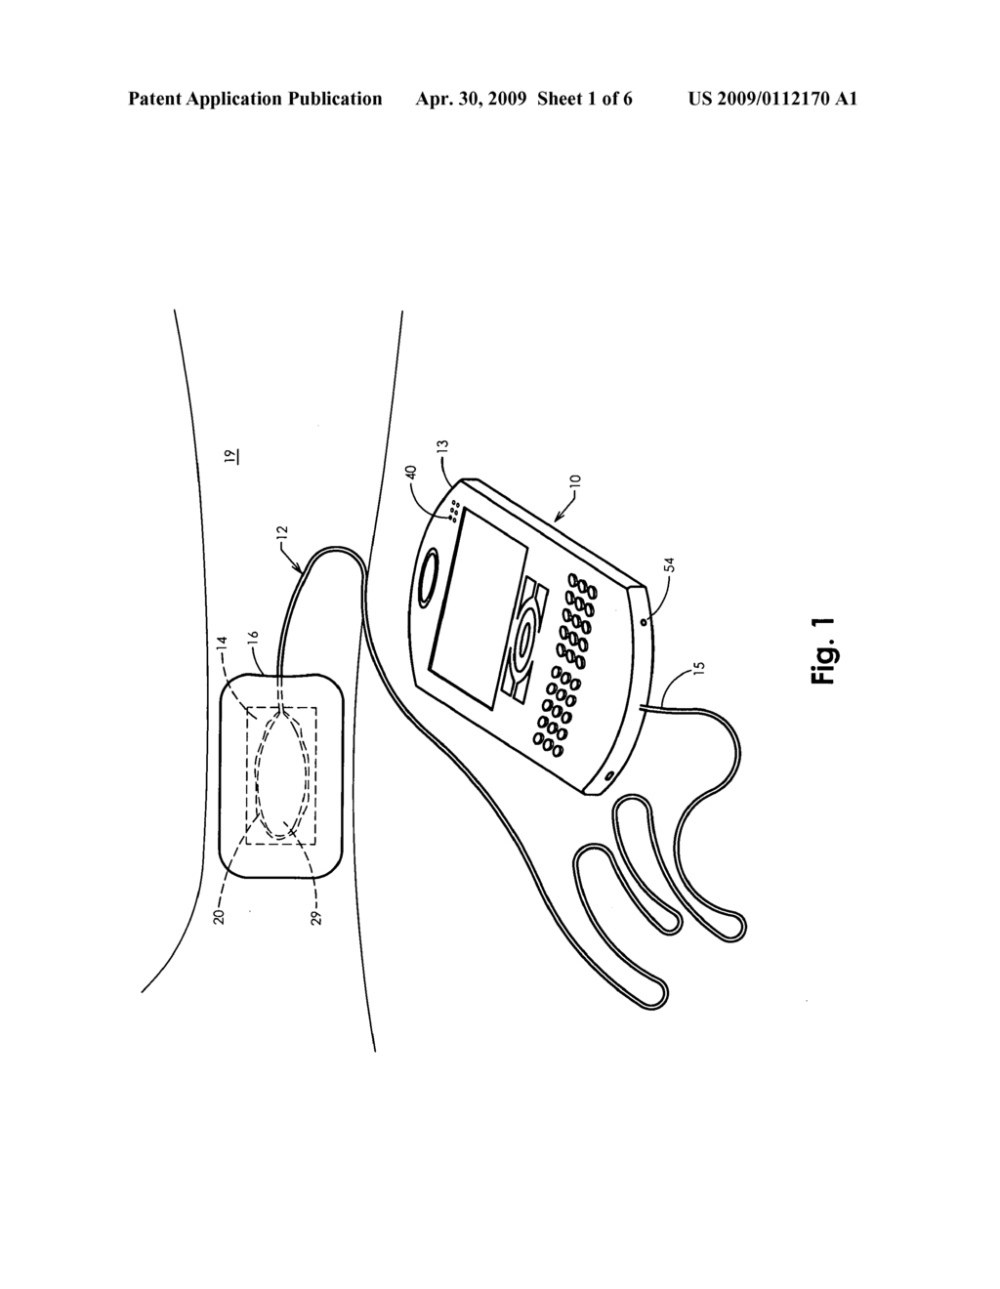 medium resolution of apparatus and methods for controlling tissue oxygenation for wound healing and promoting tissue viability diagram schematic and image 02